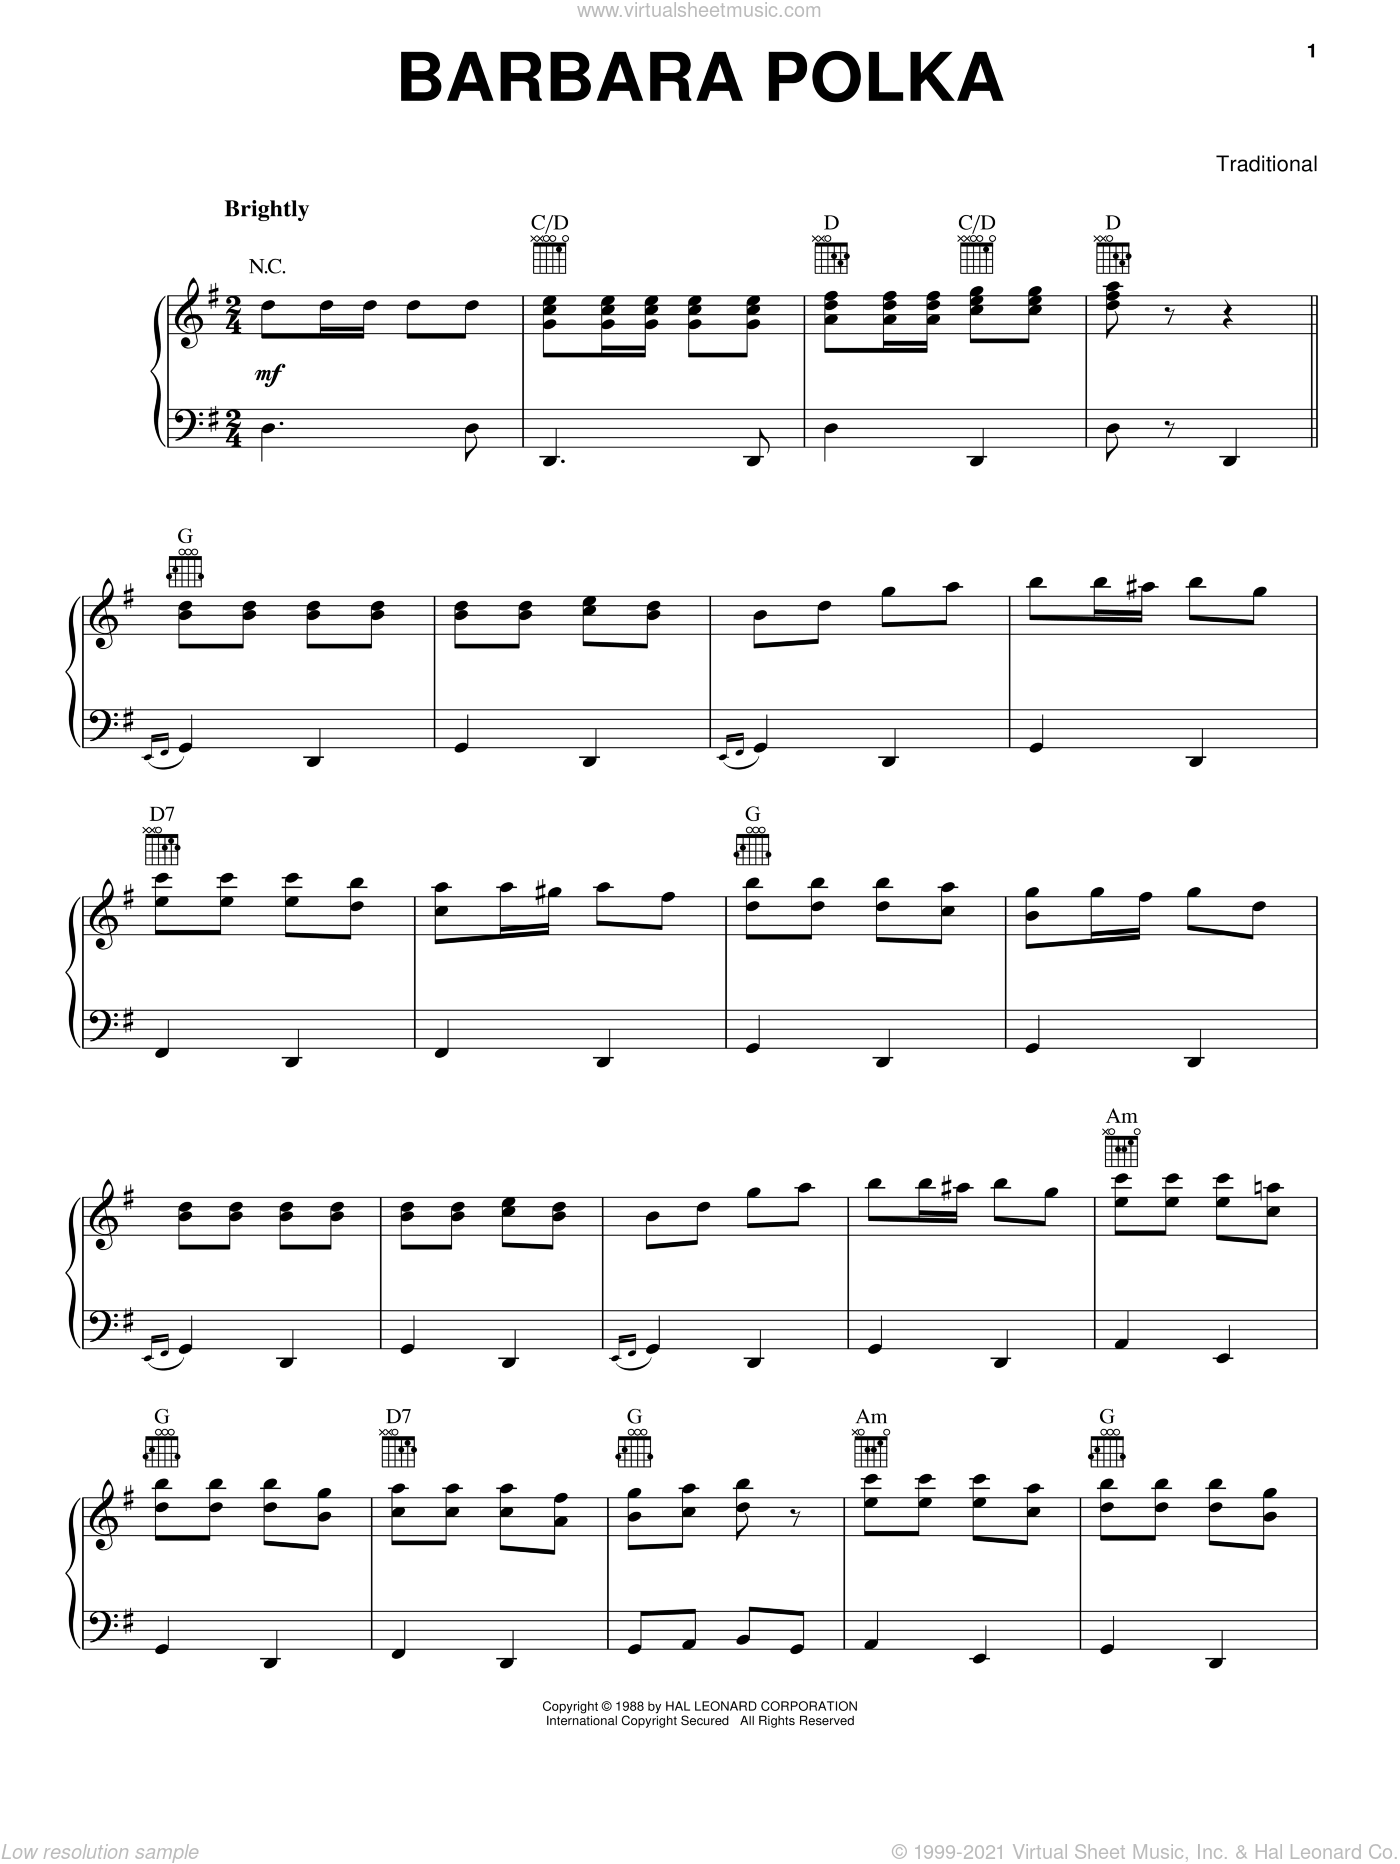 Barbara Polka sheet music for voice, piano or guitar. Score Image Preview.